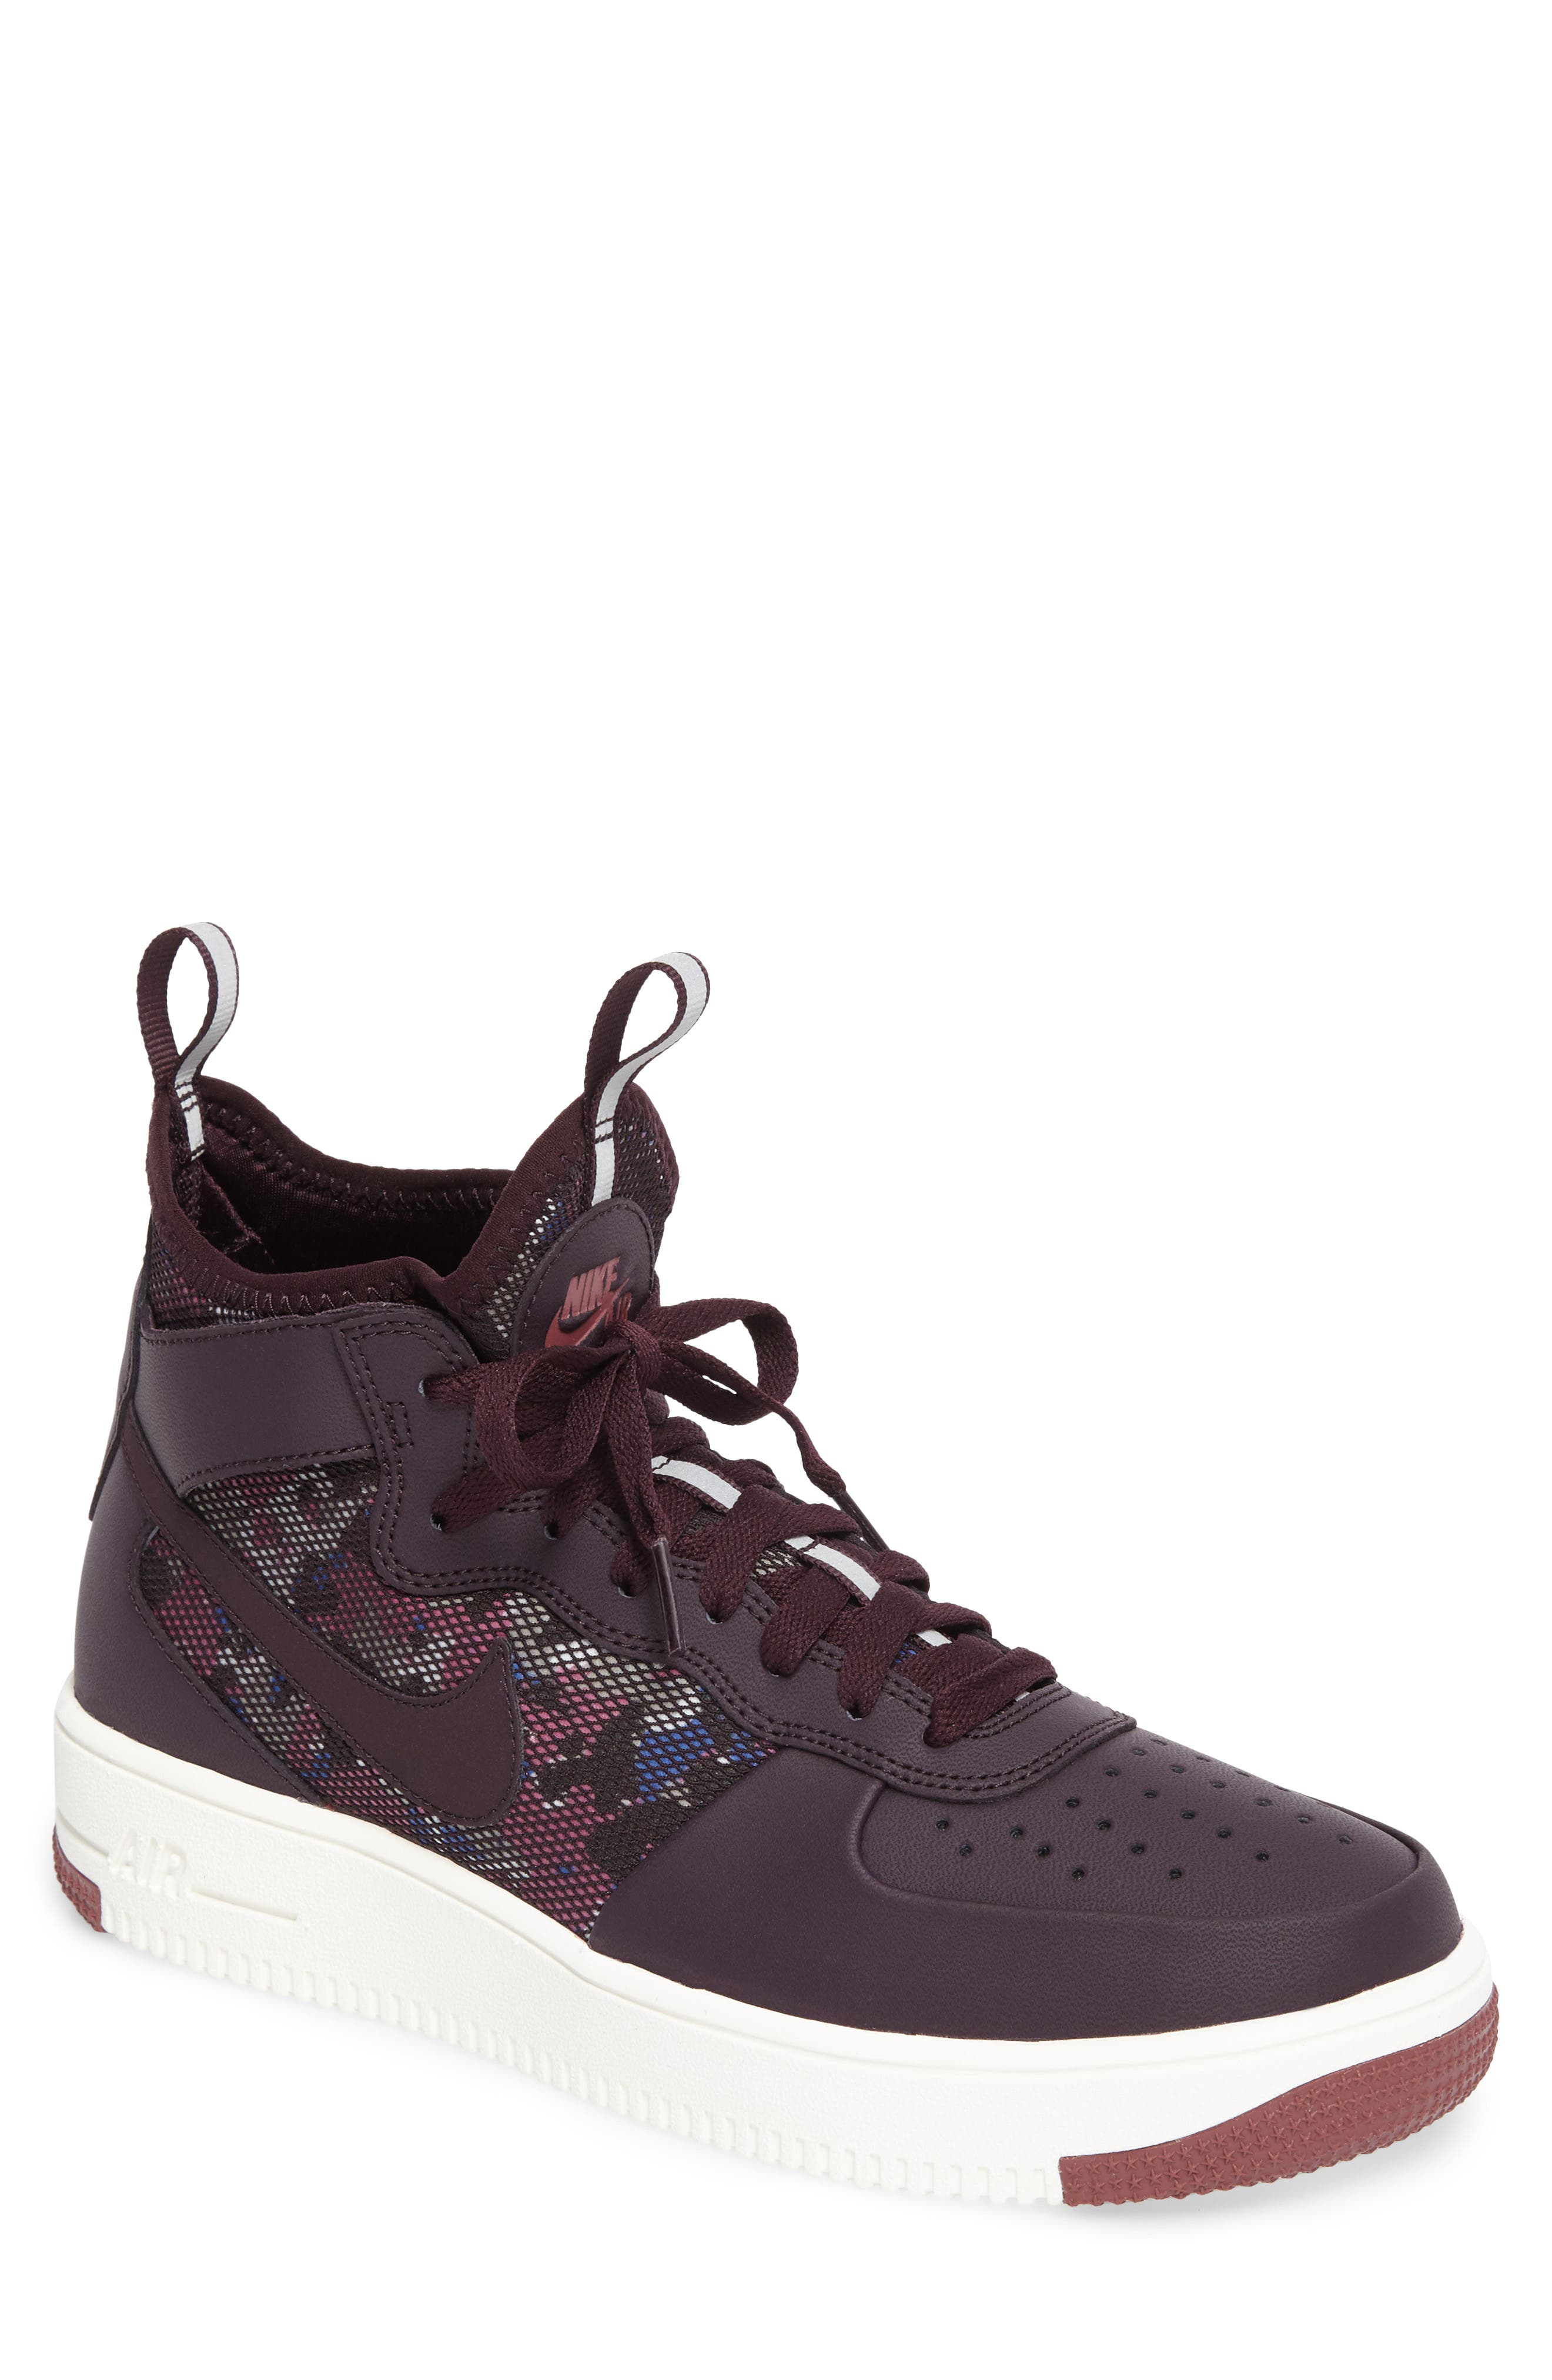 Air Force 1 Ultraforce Mid Sneaker,                             Main thumbnail 1, color,                             Port Wine/ Summit White